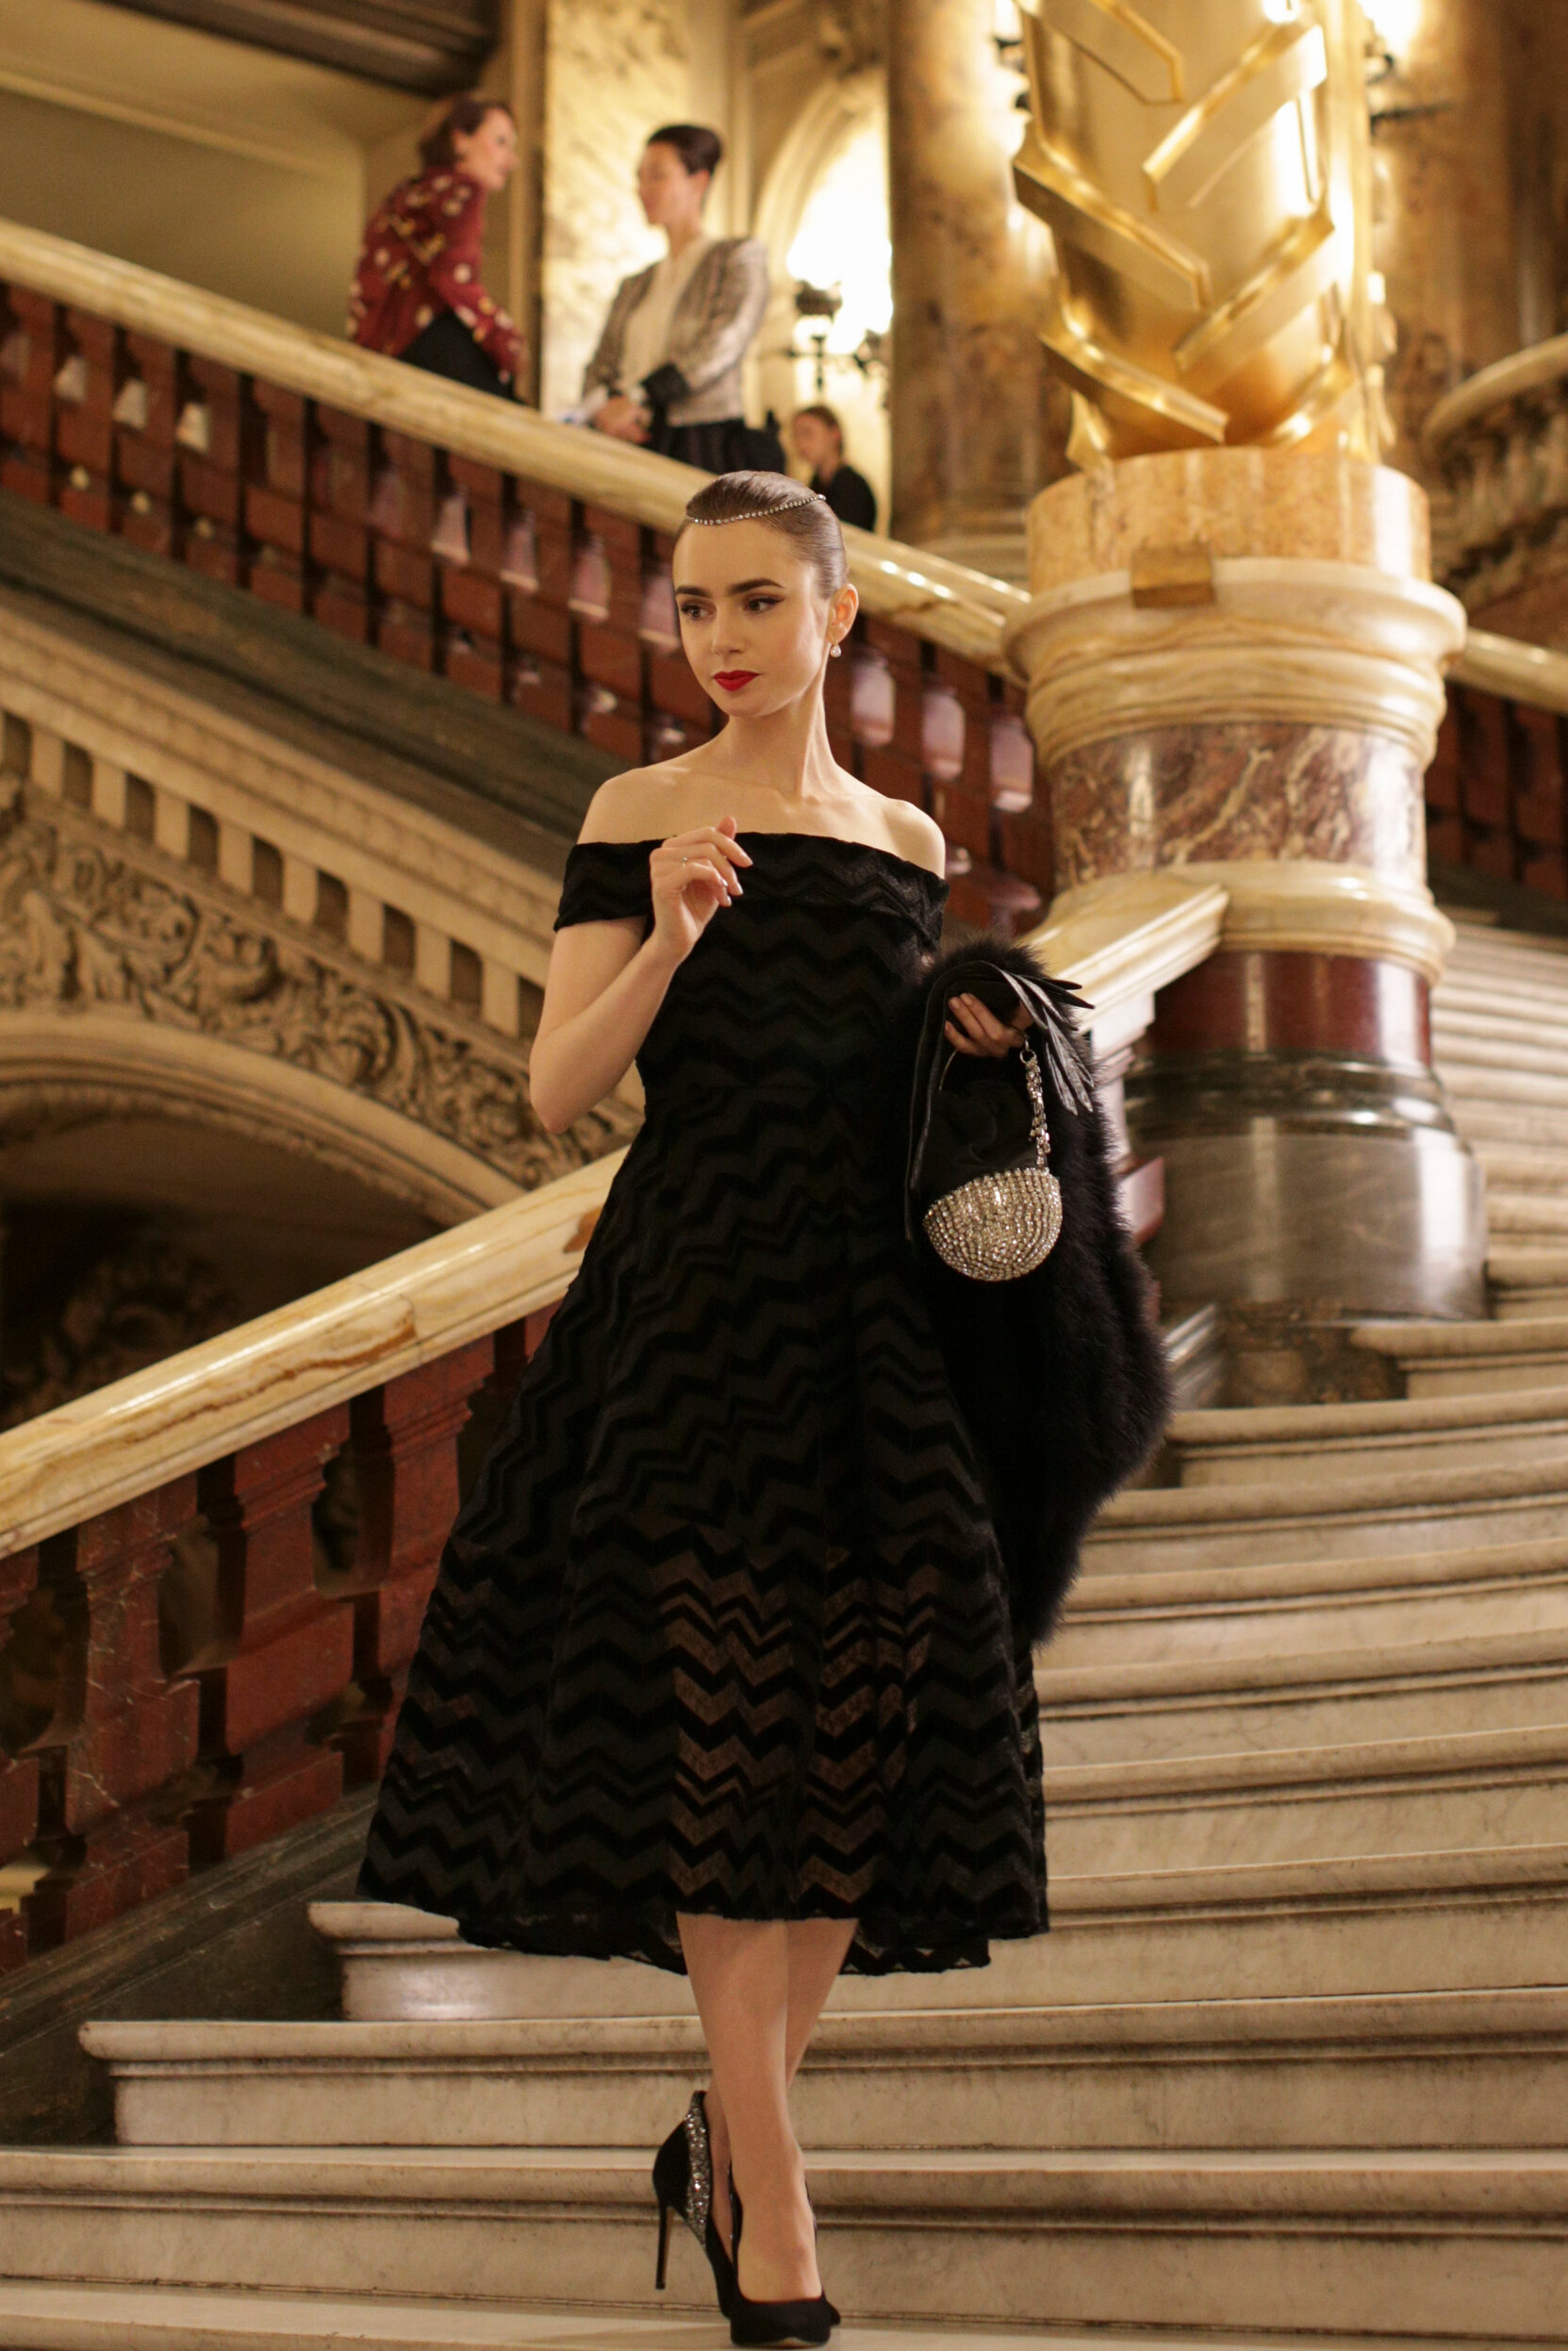 Emily in Paris Lily Collins Christian Siriano Opera Dress